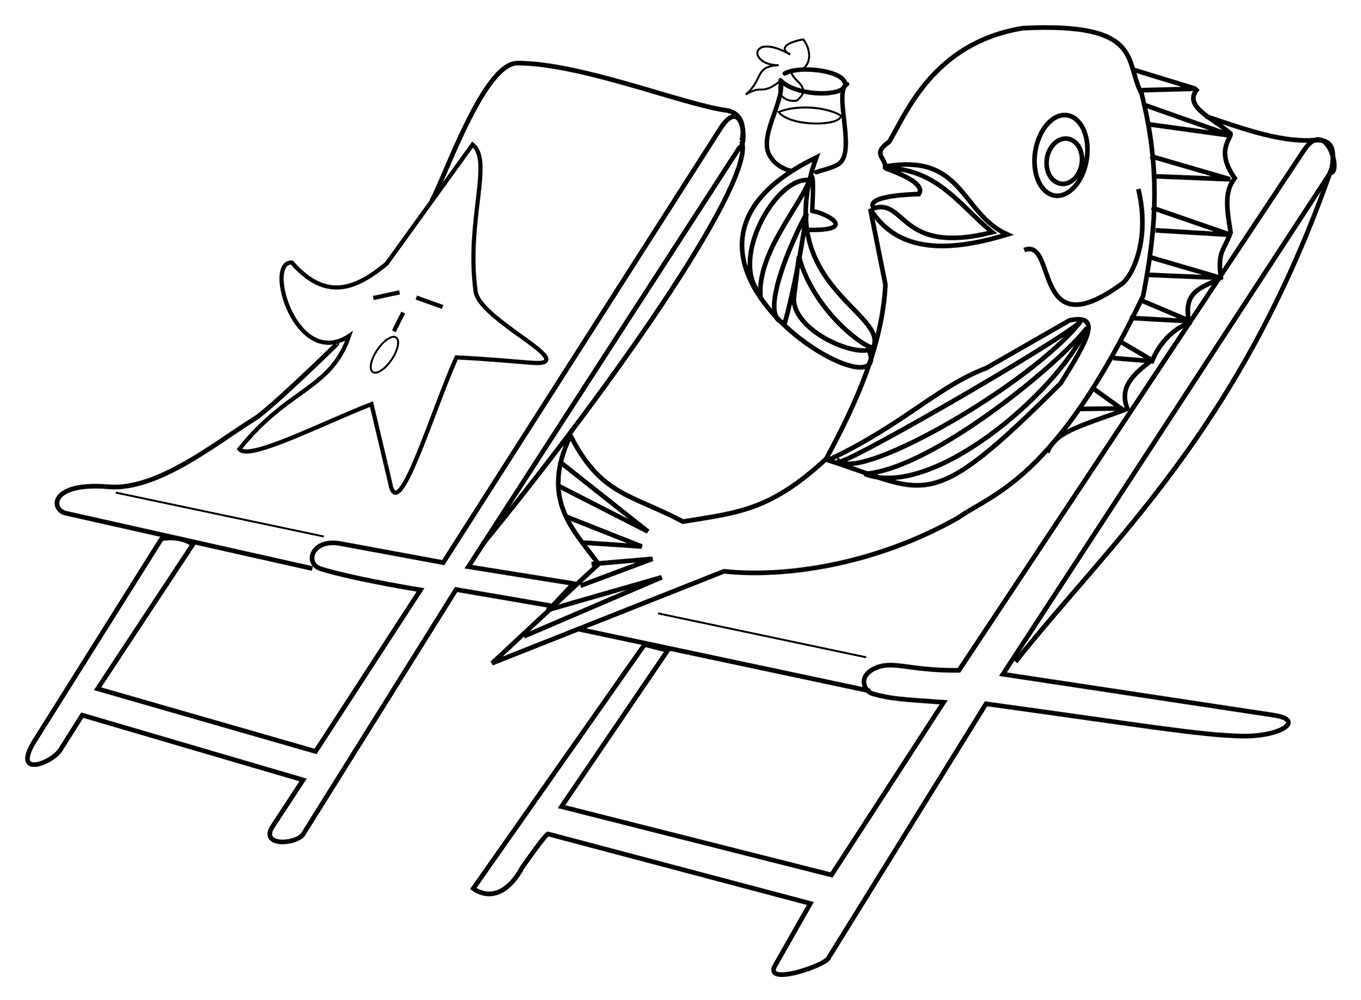 Free seaside colouring page for kids of a fish lazing around in a deckchair on the beach